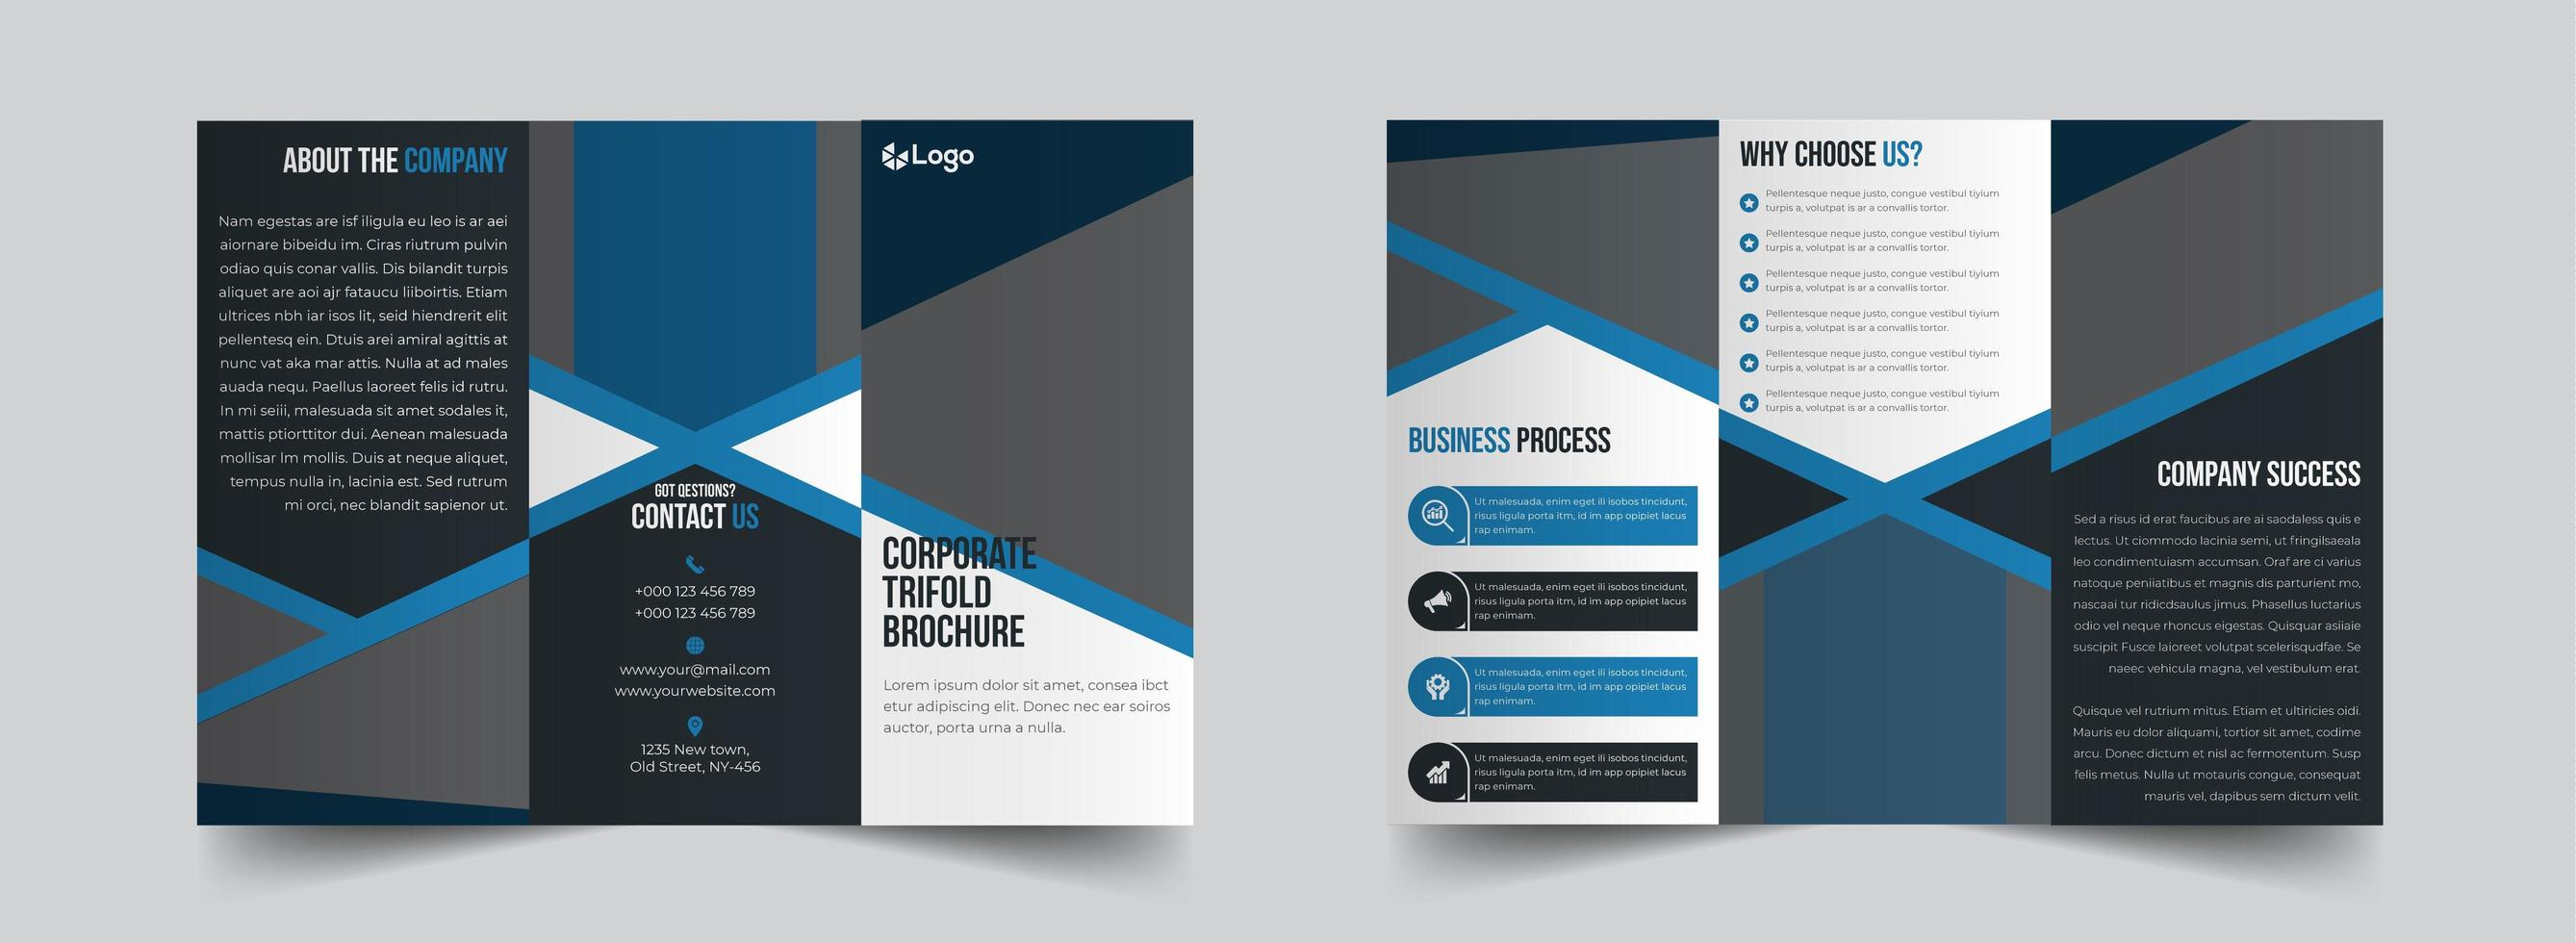 Simple blue and grey corporate trifold brochure template  vector